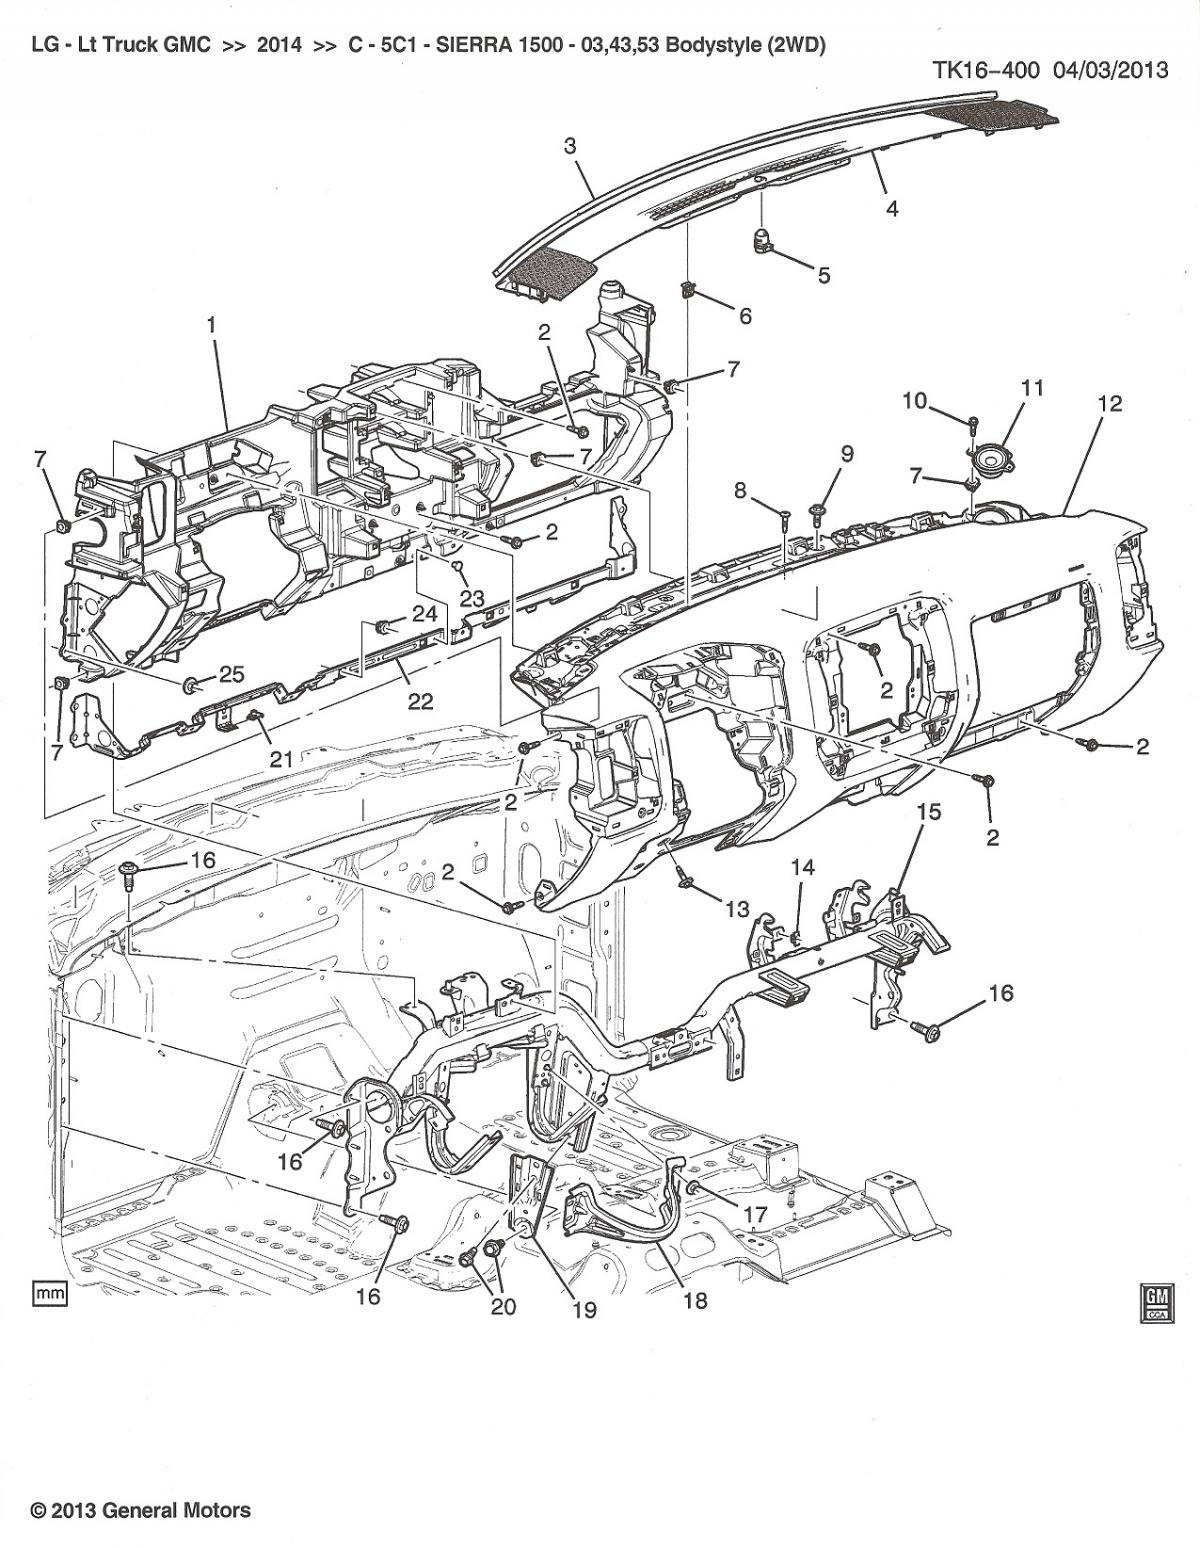 Chevrolet Silverado Diagrams